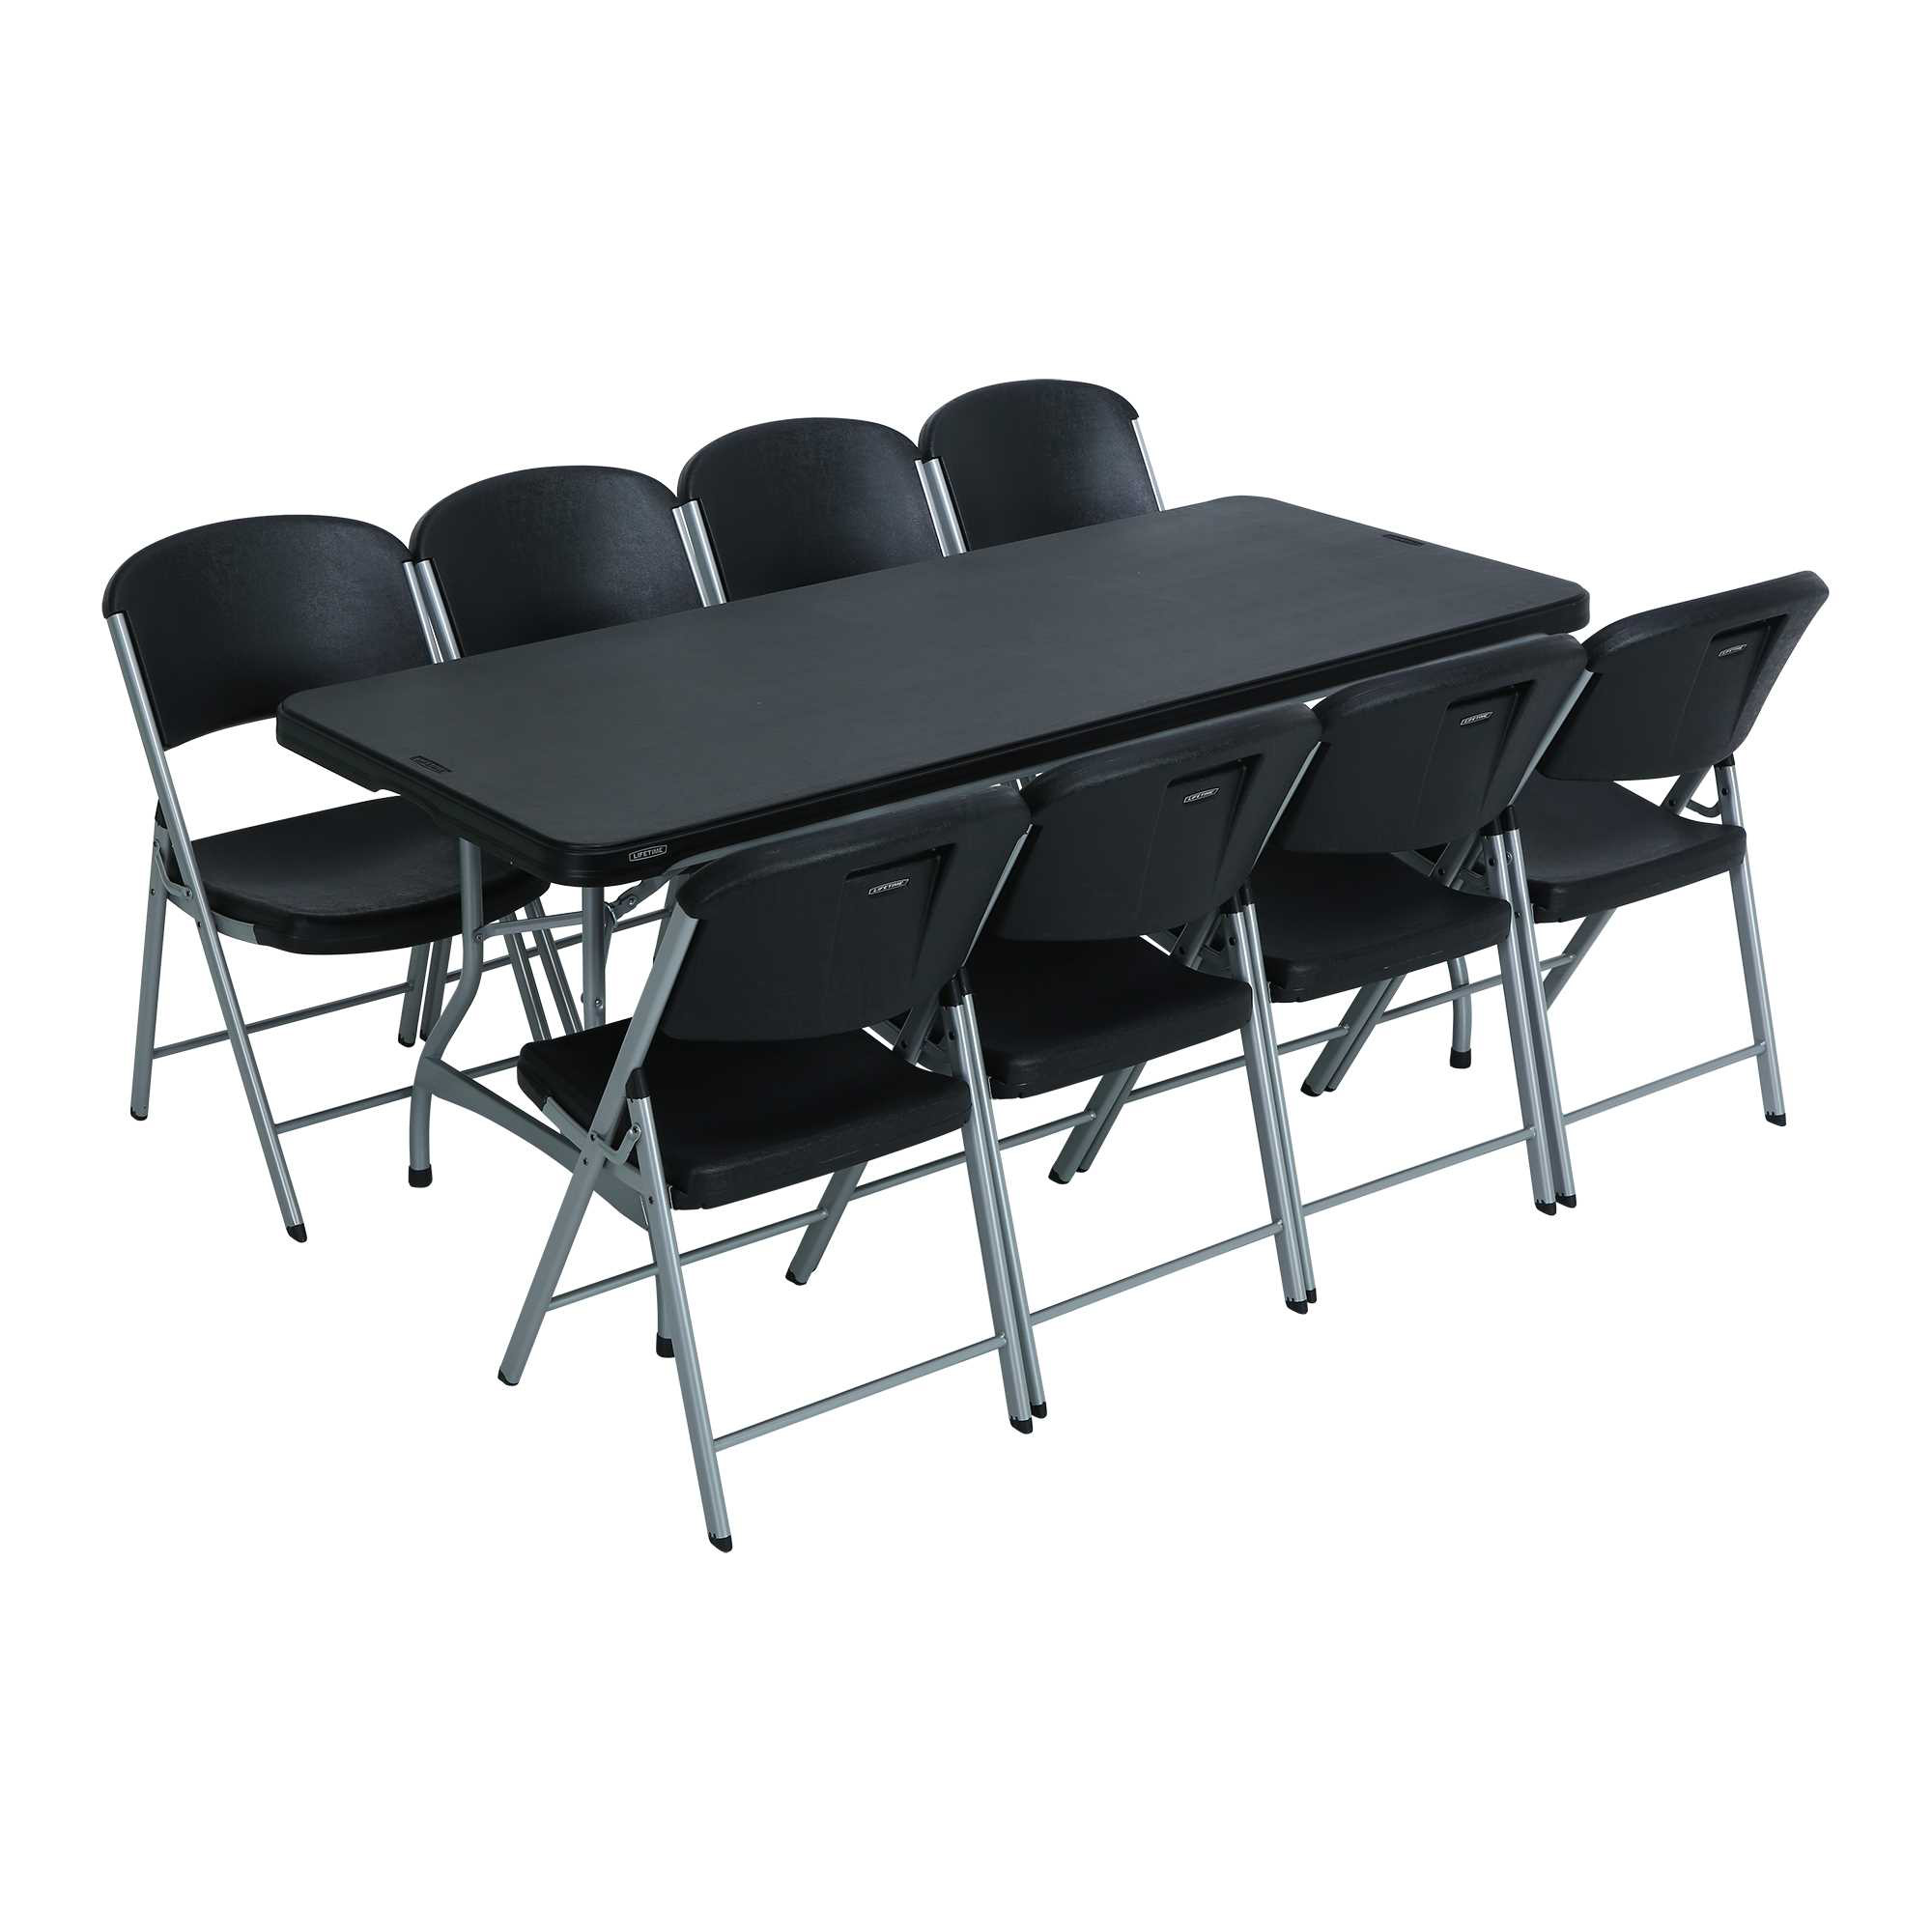 Free Tables And Chairs: Lifetime 6 Ft Rectangular Tables & Chairs (Black) Fast